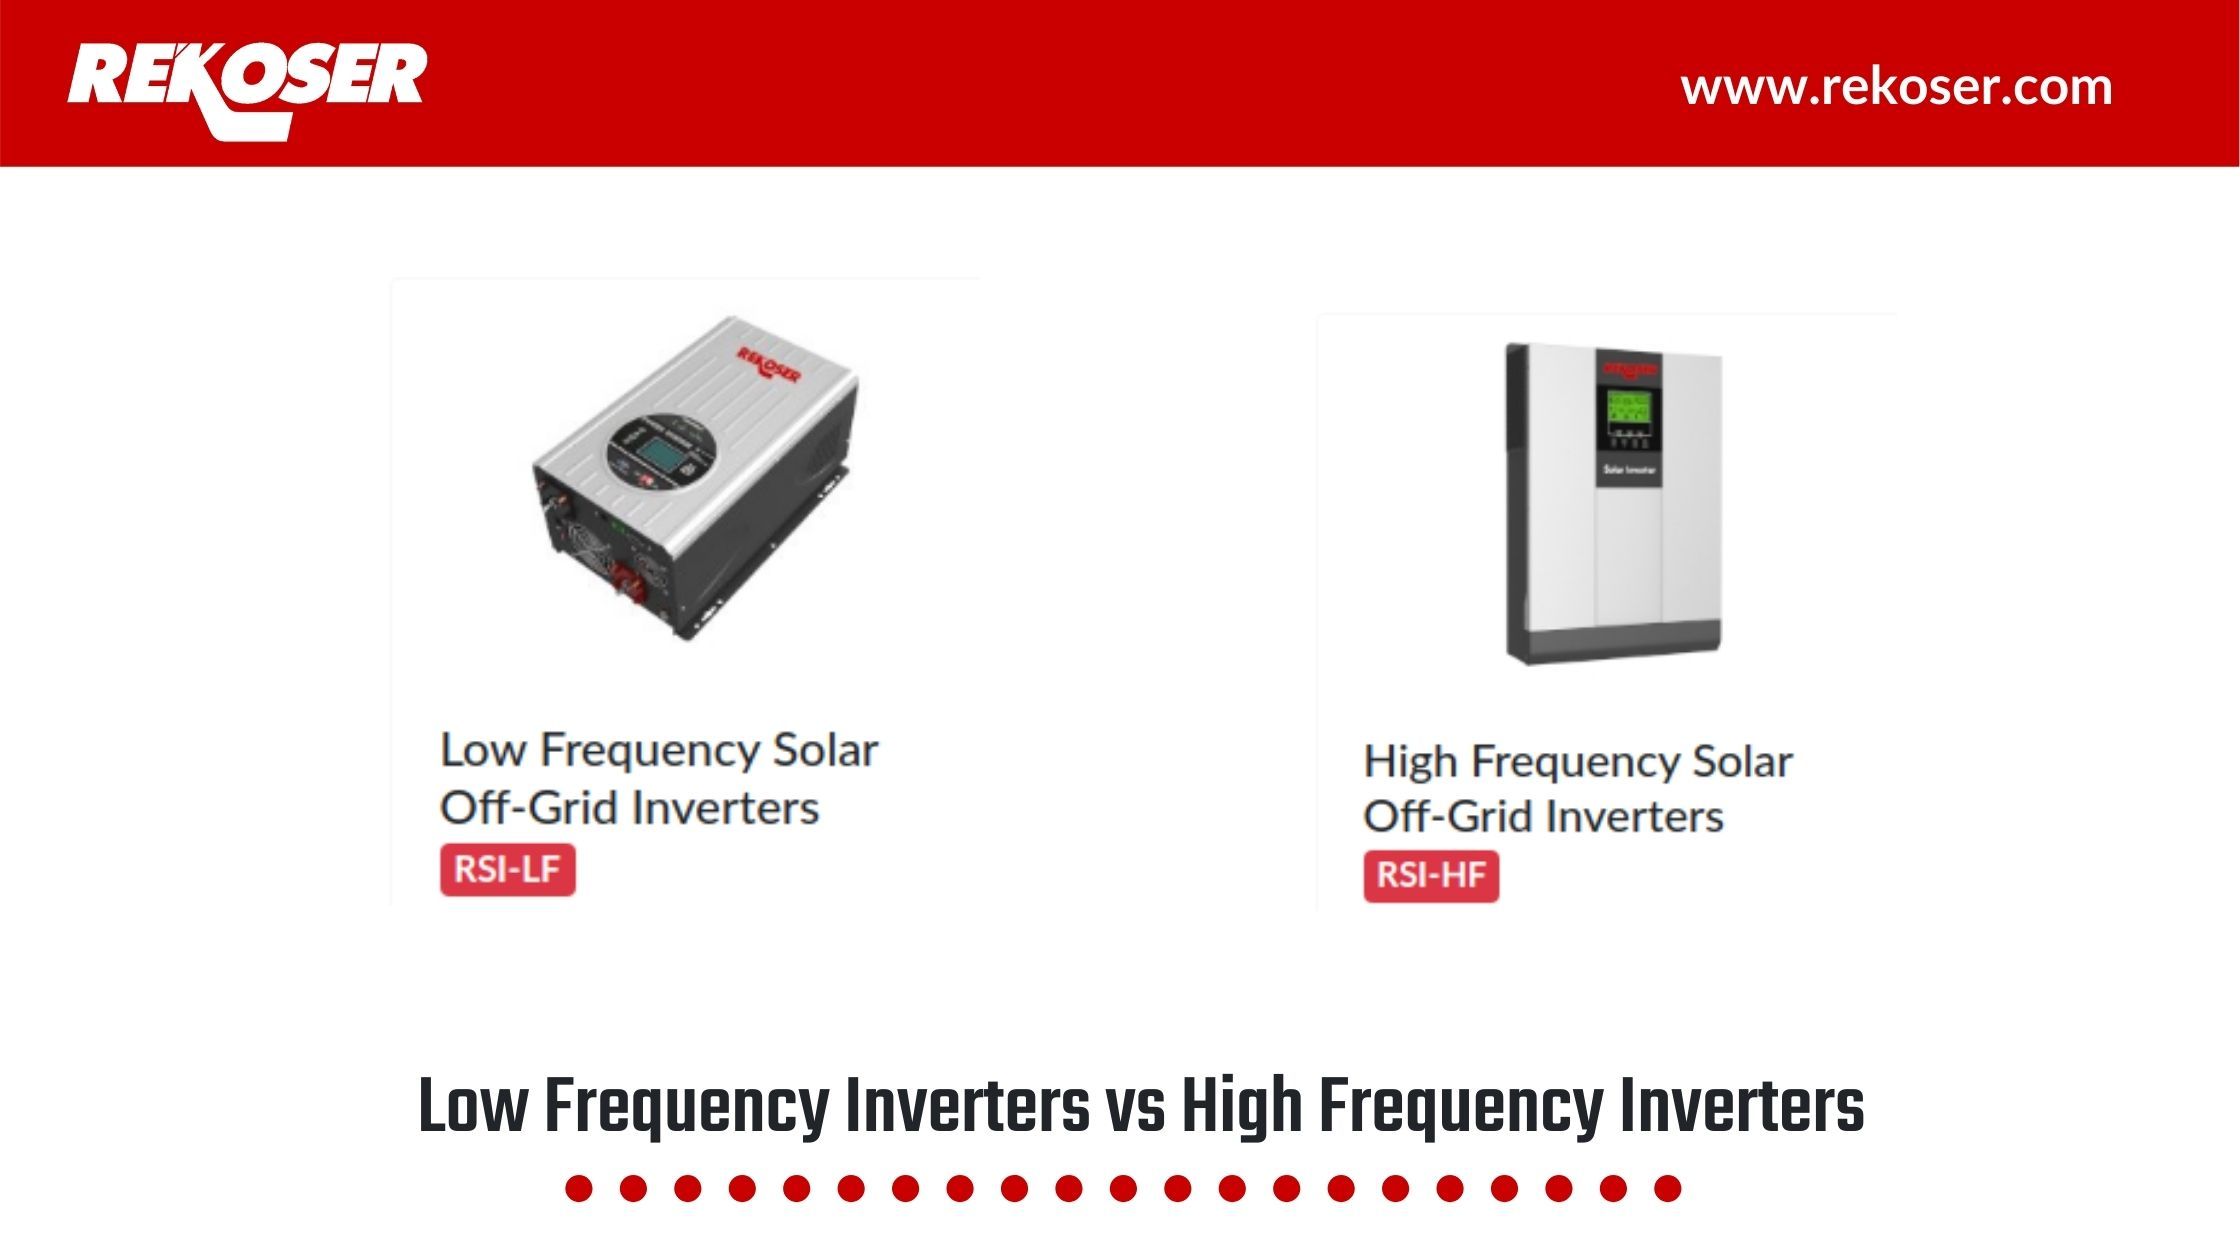 Differences between Low Frequency (LF) Inverters and High Frequency (HF) Inverters